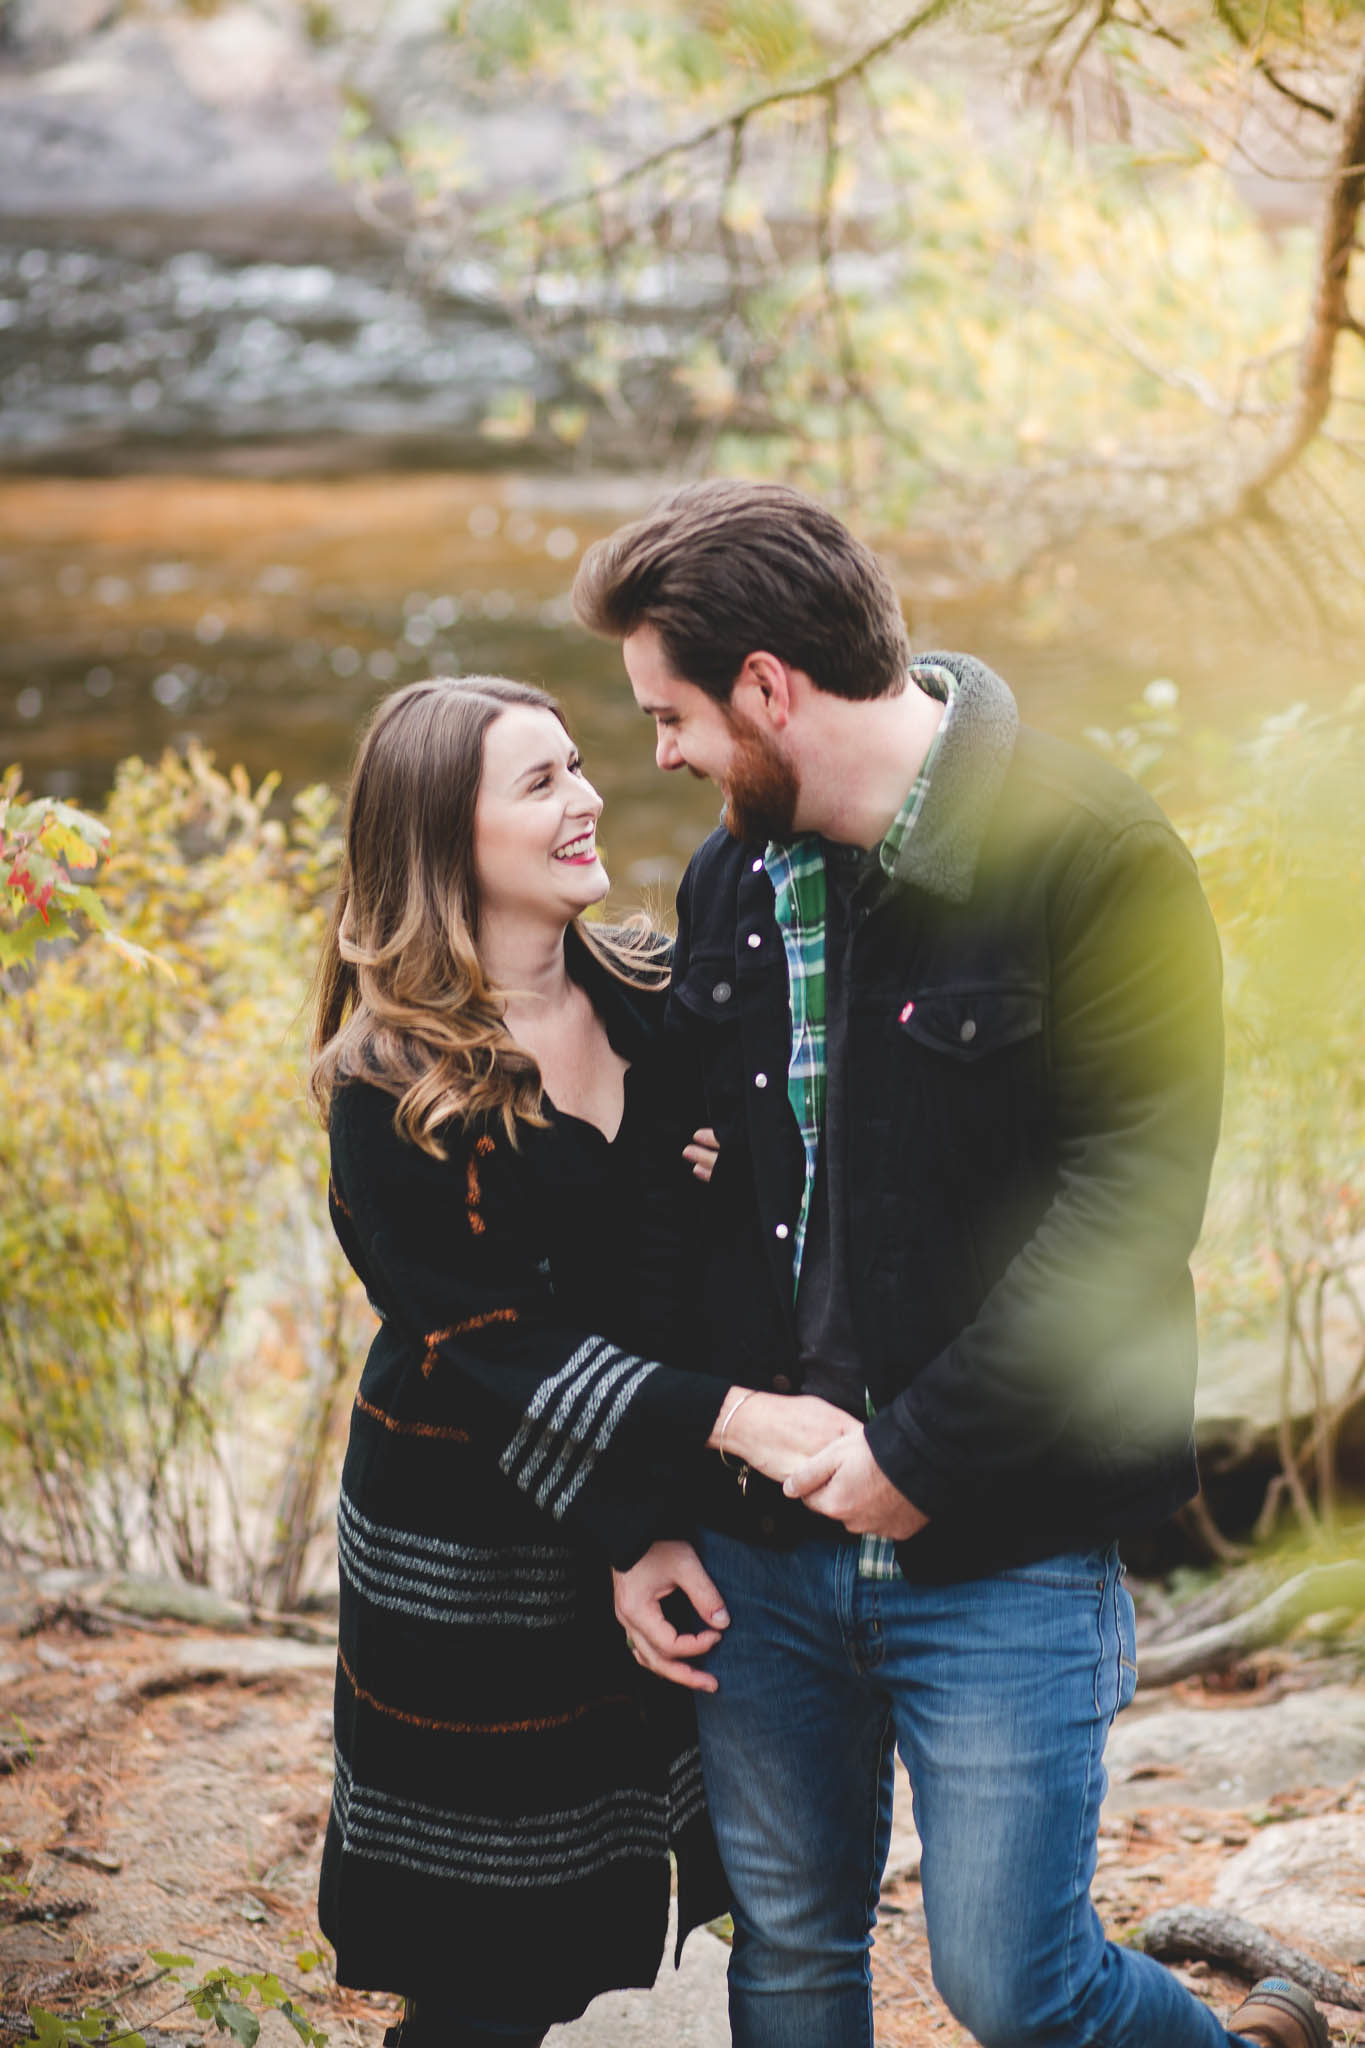 Amy D Photography- Fall Engagement Session- Fall Wedding- Engagement Session Poses- Engagement Poses- Wedding Photography Barrie-Fall Engagement  (81 of 90).jpg